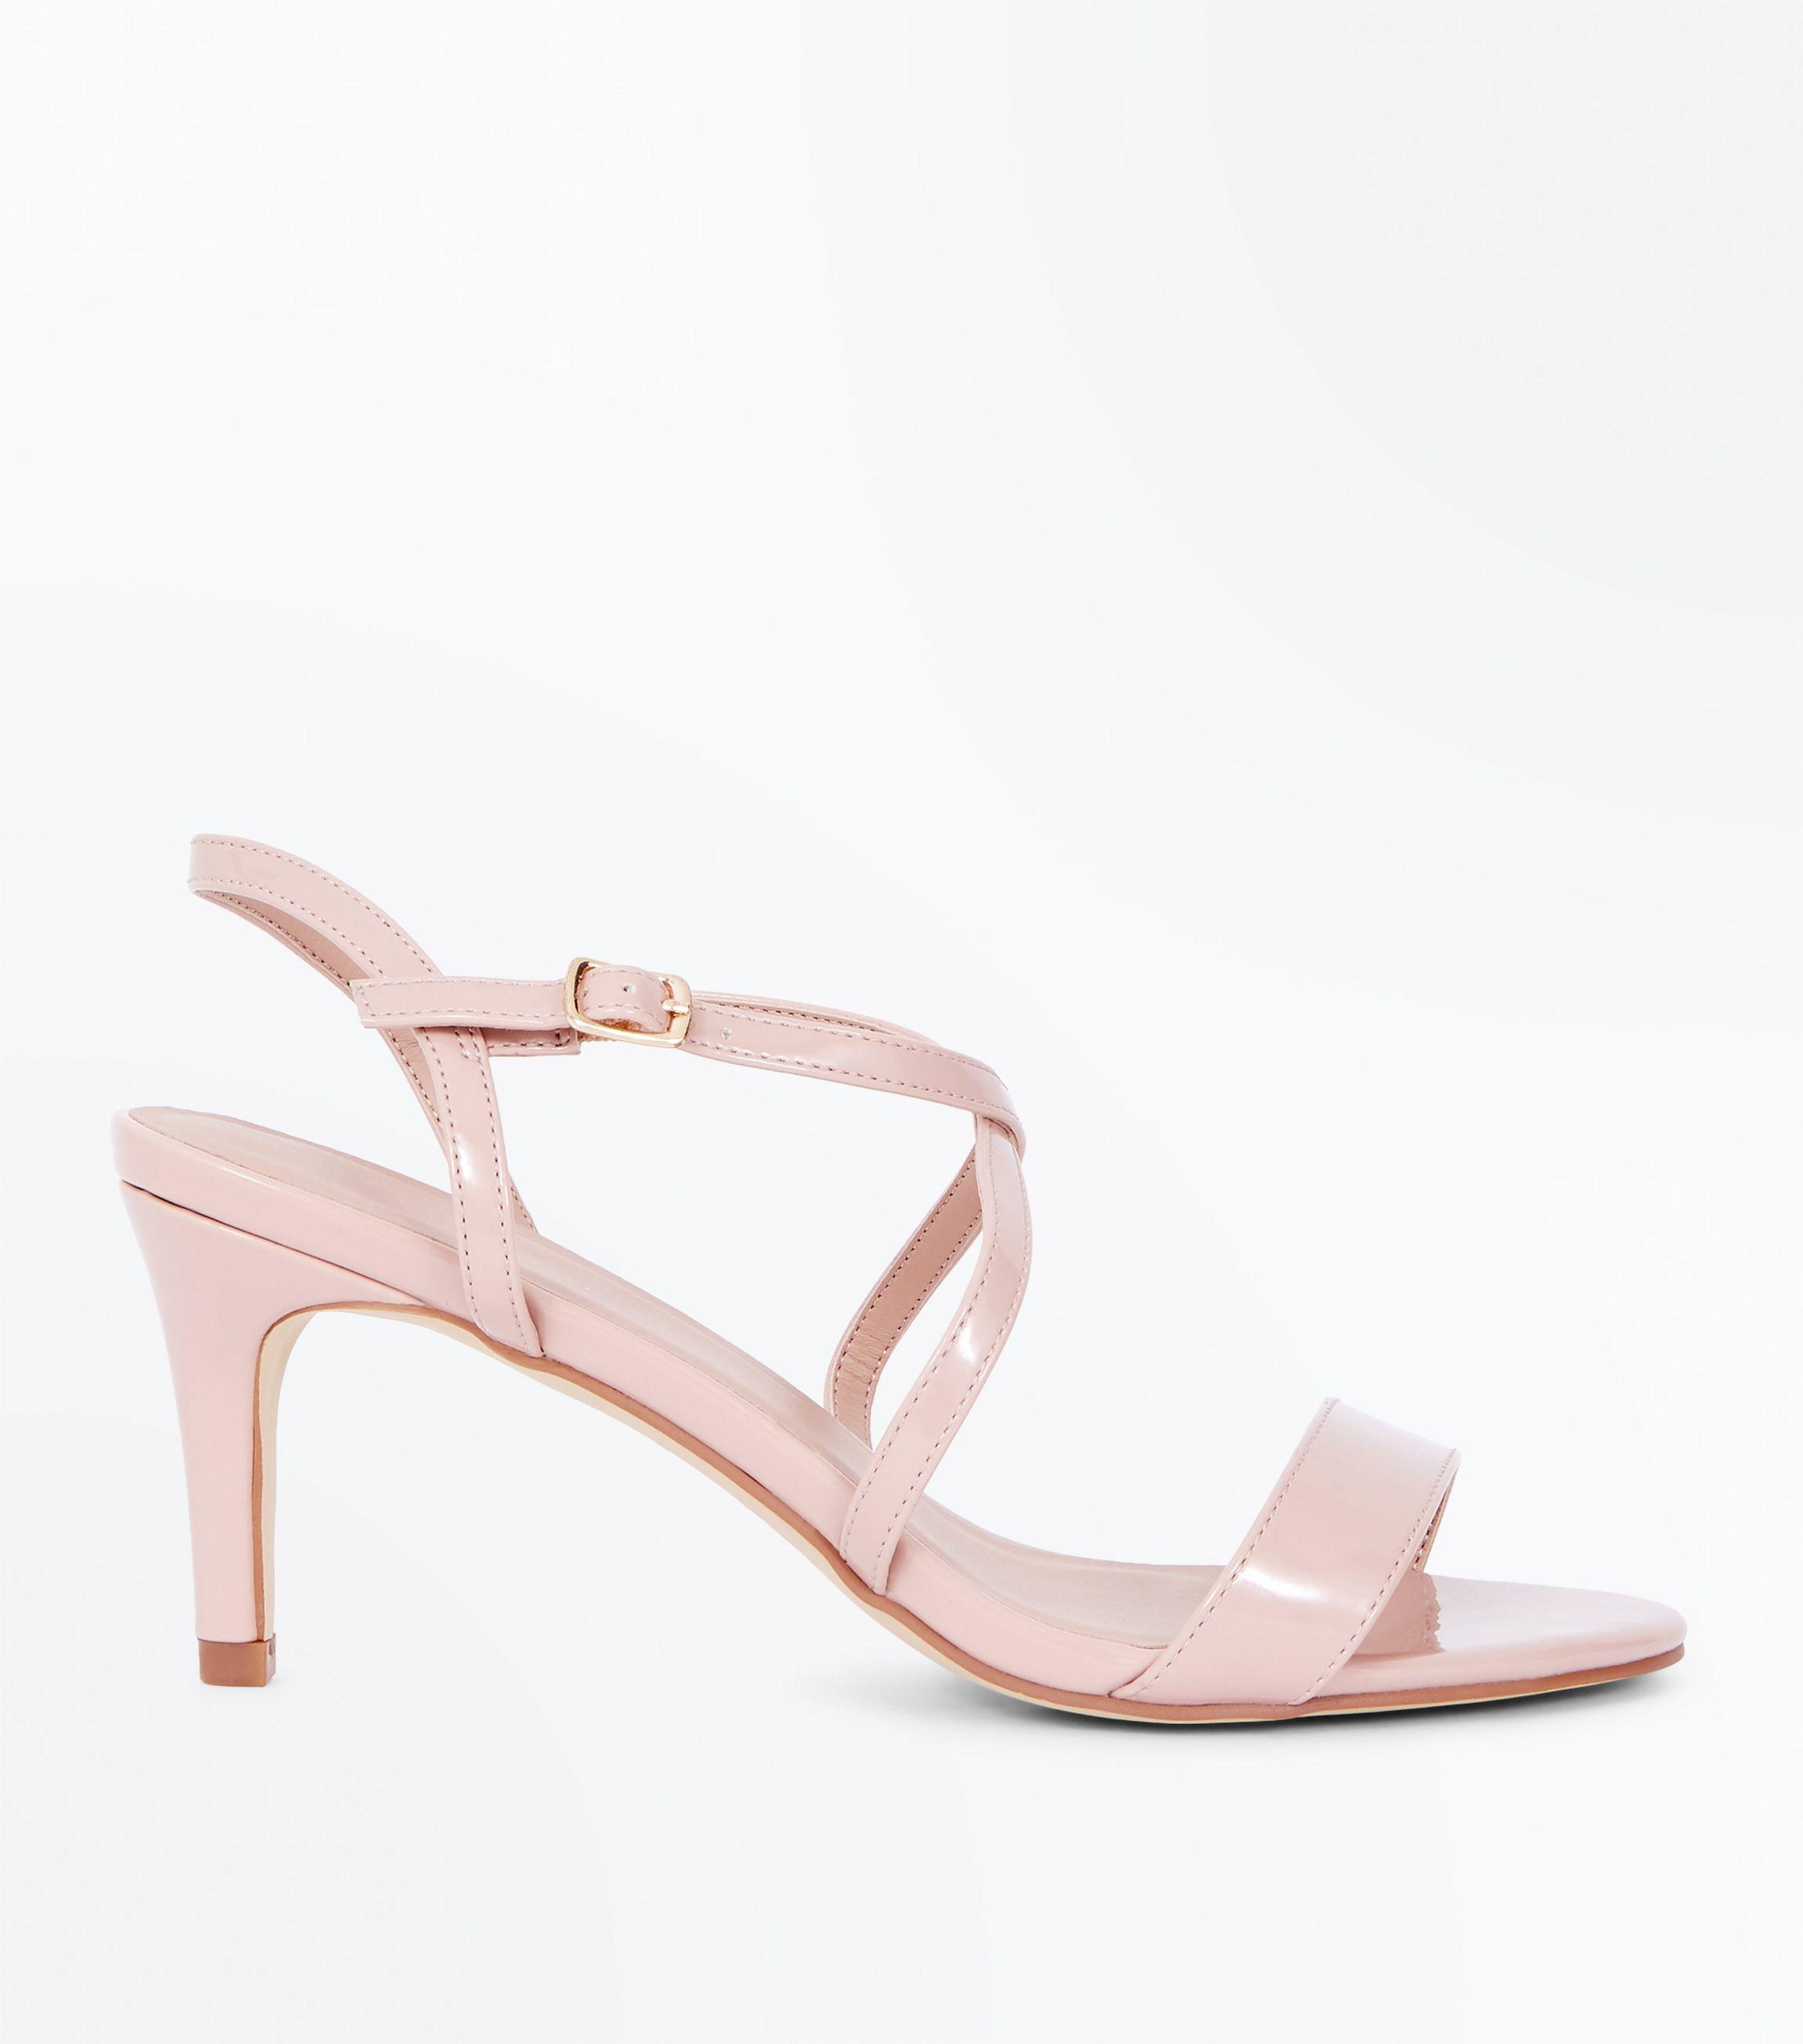 dcffd5f20d9 New Look Nude Patent Strappy Kitten Heel Sandals in Pink - Lyst